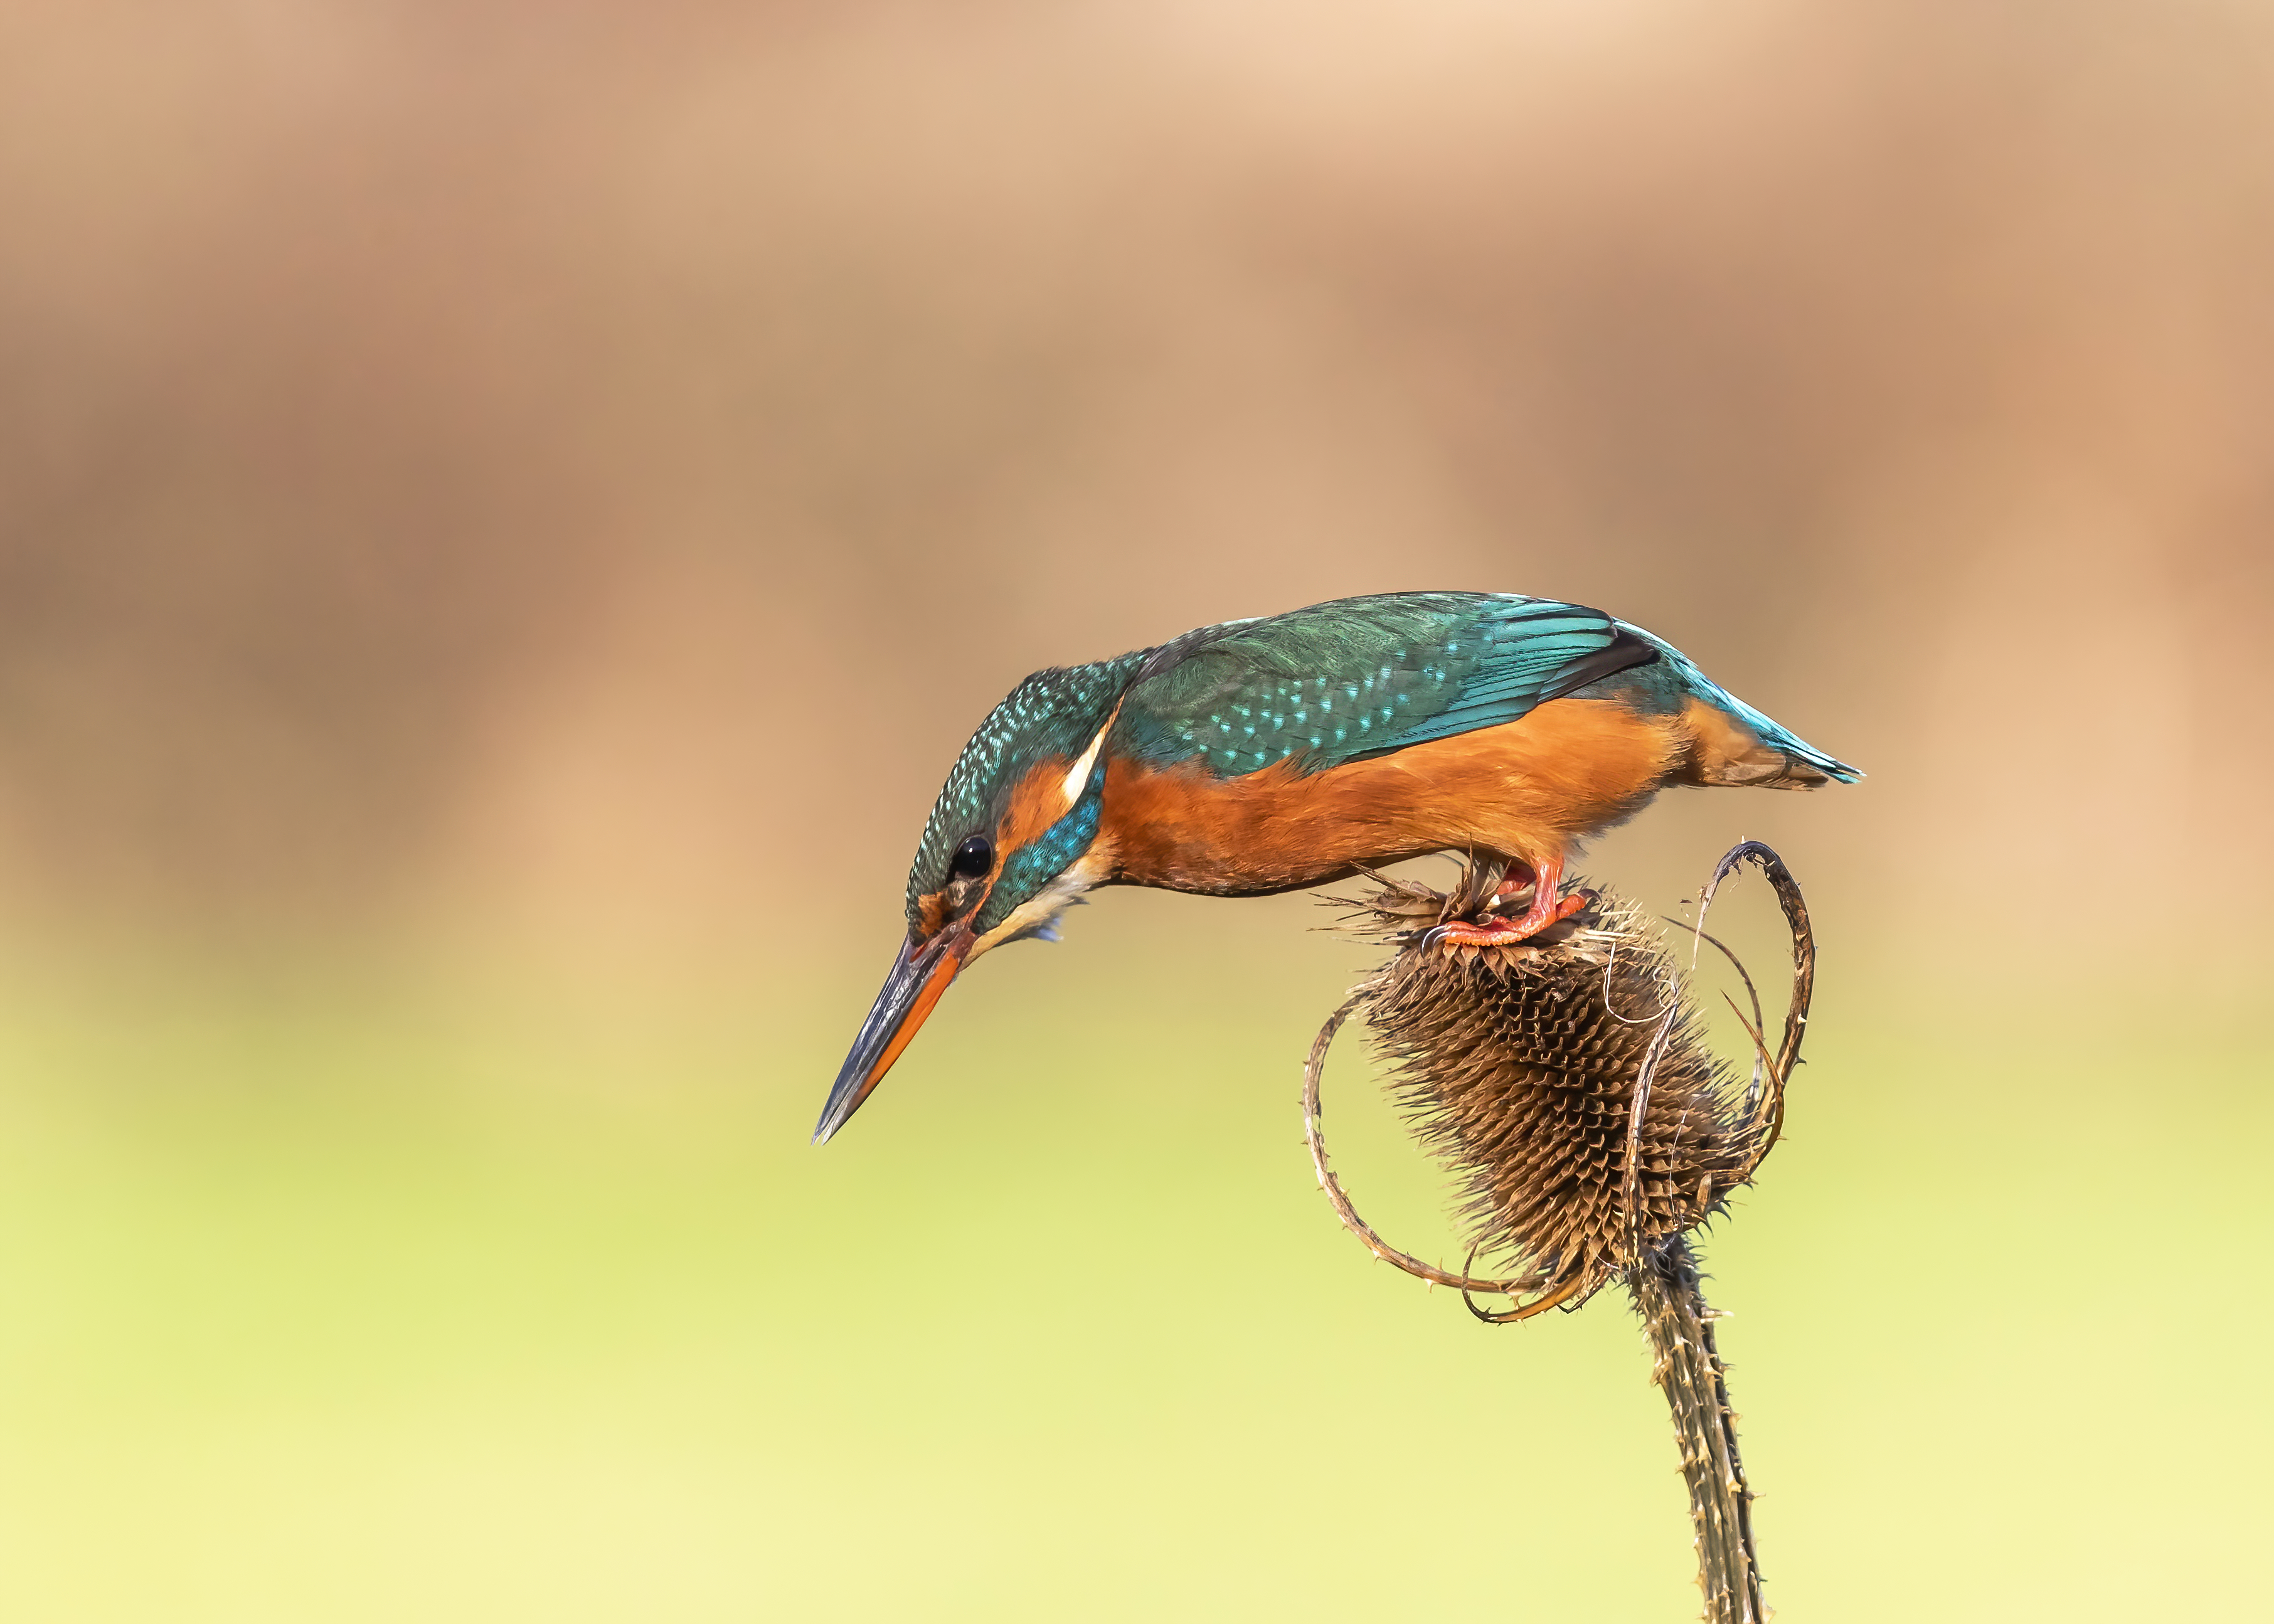 Kingfisher leaning over teasel